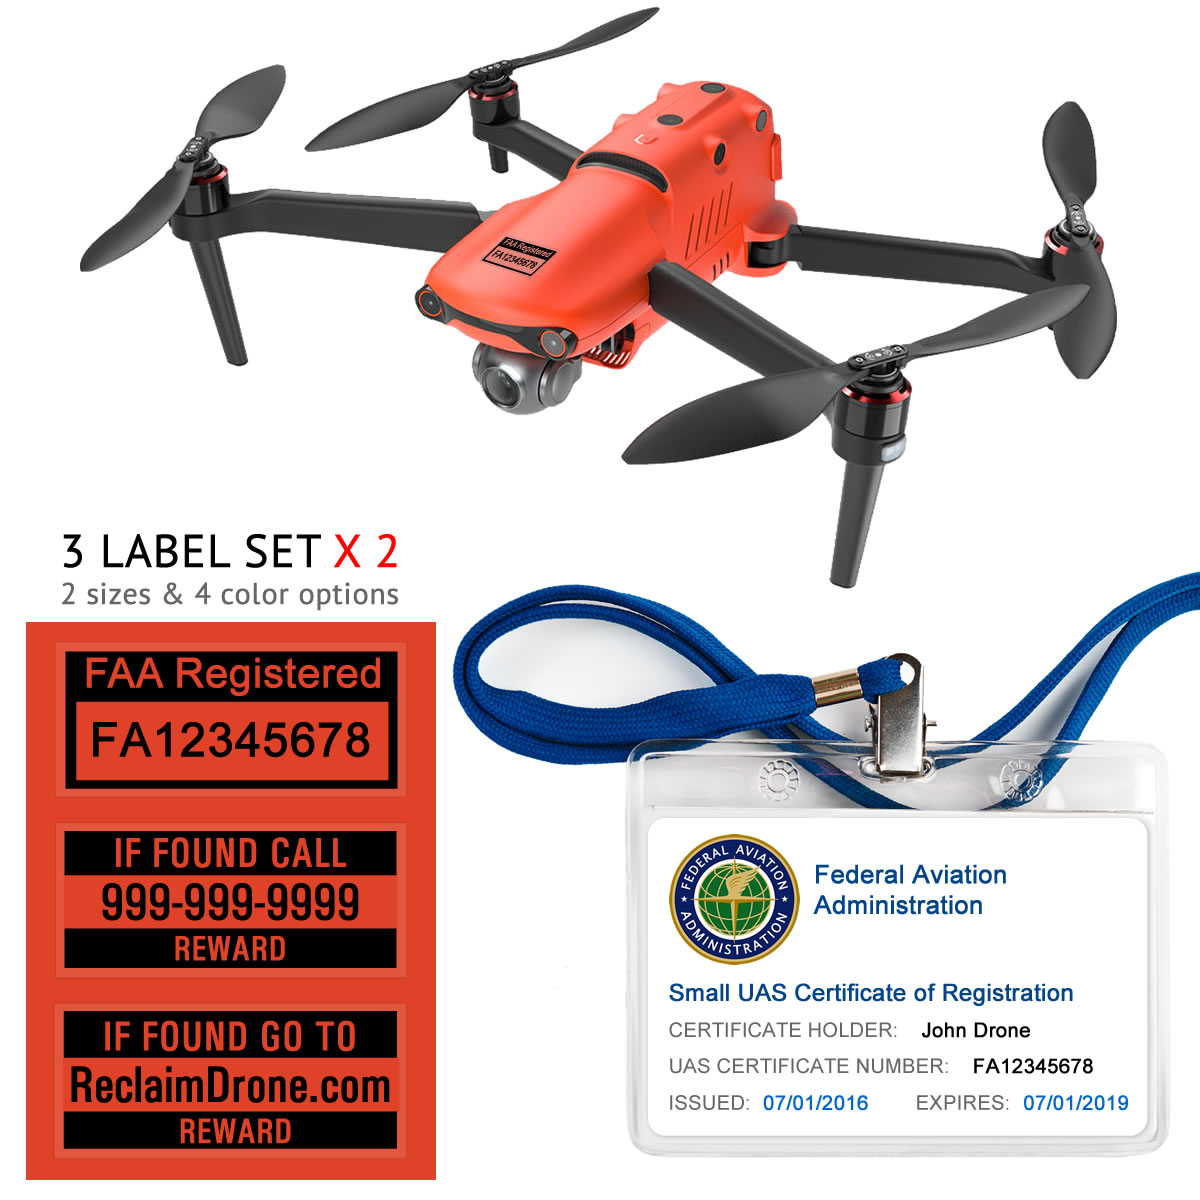 Autel Evo 2 – Bundle – FAA Registration Labels and Hobbyist FAA ID Card-2-1-black-1200px